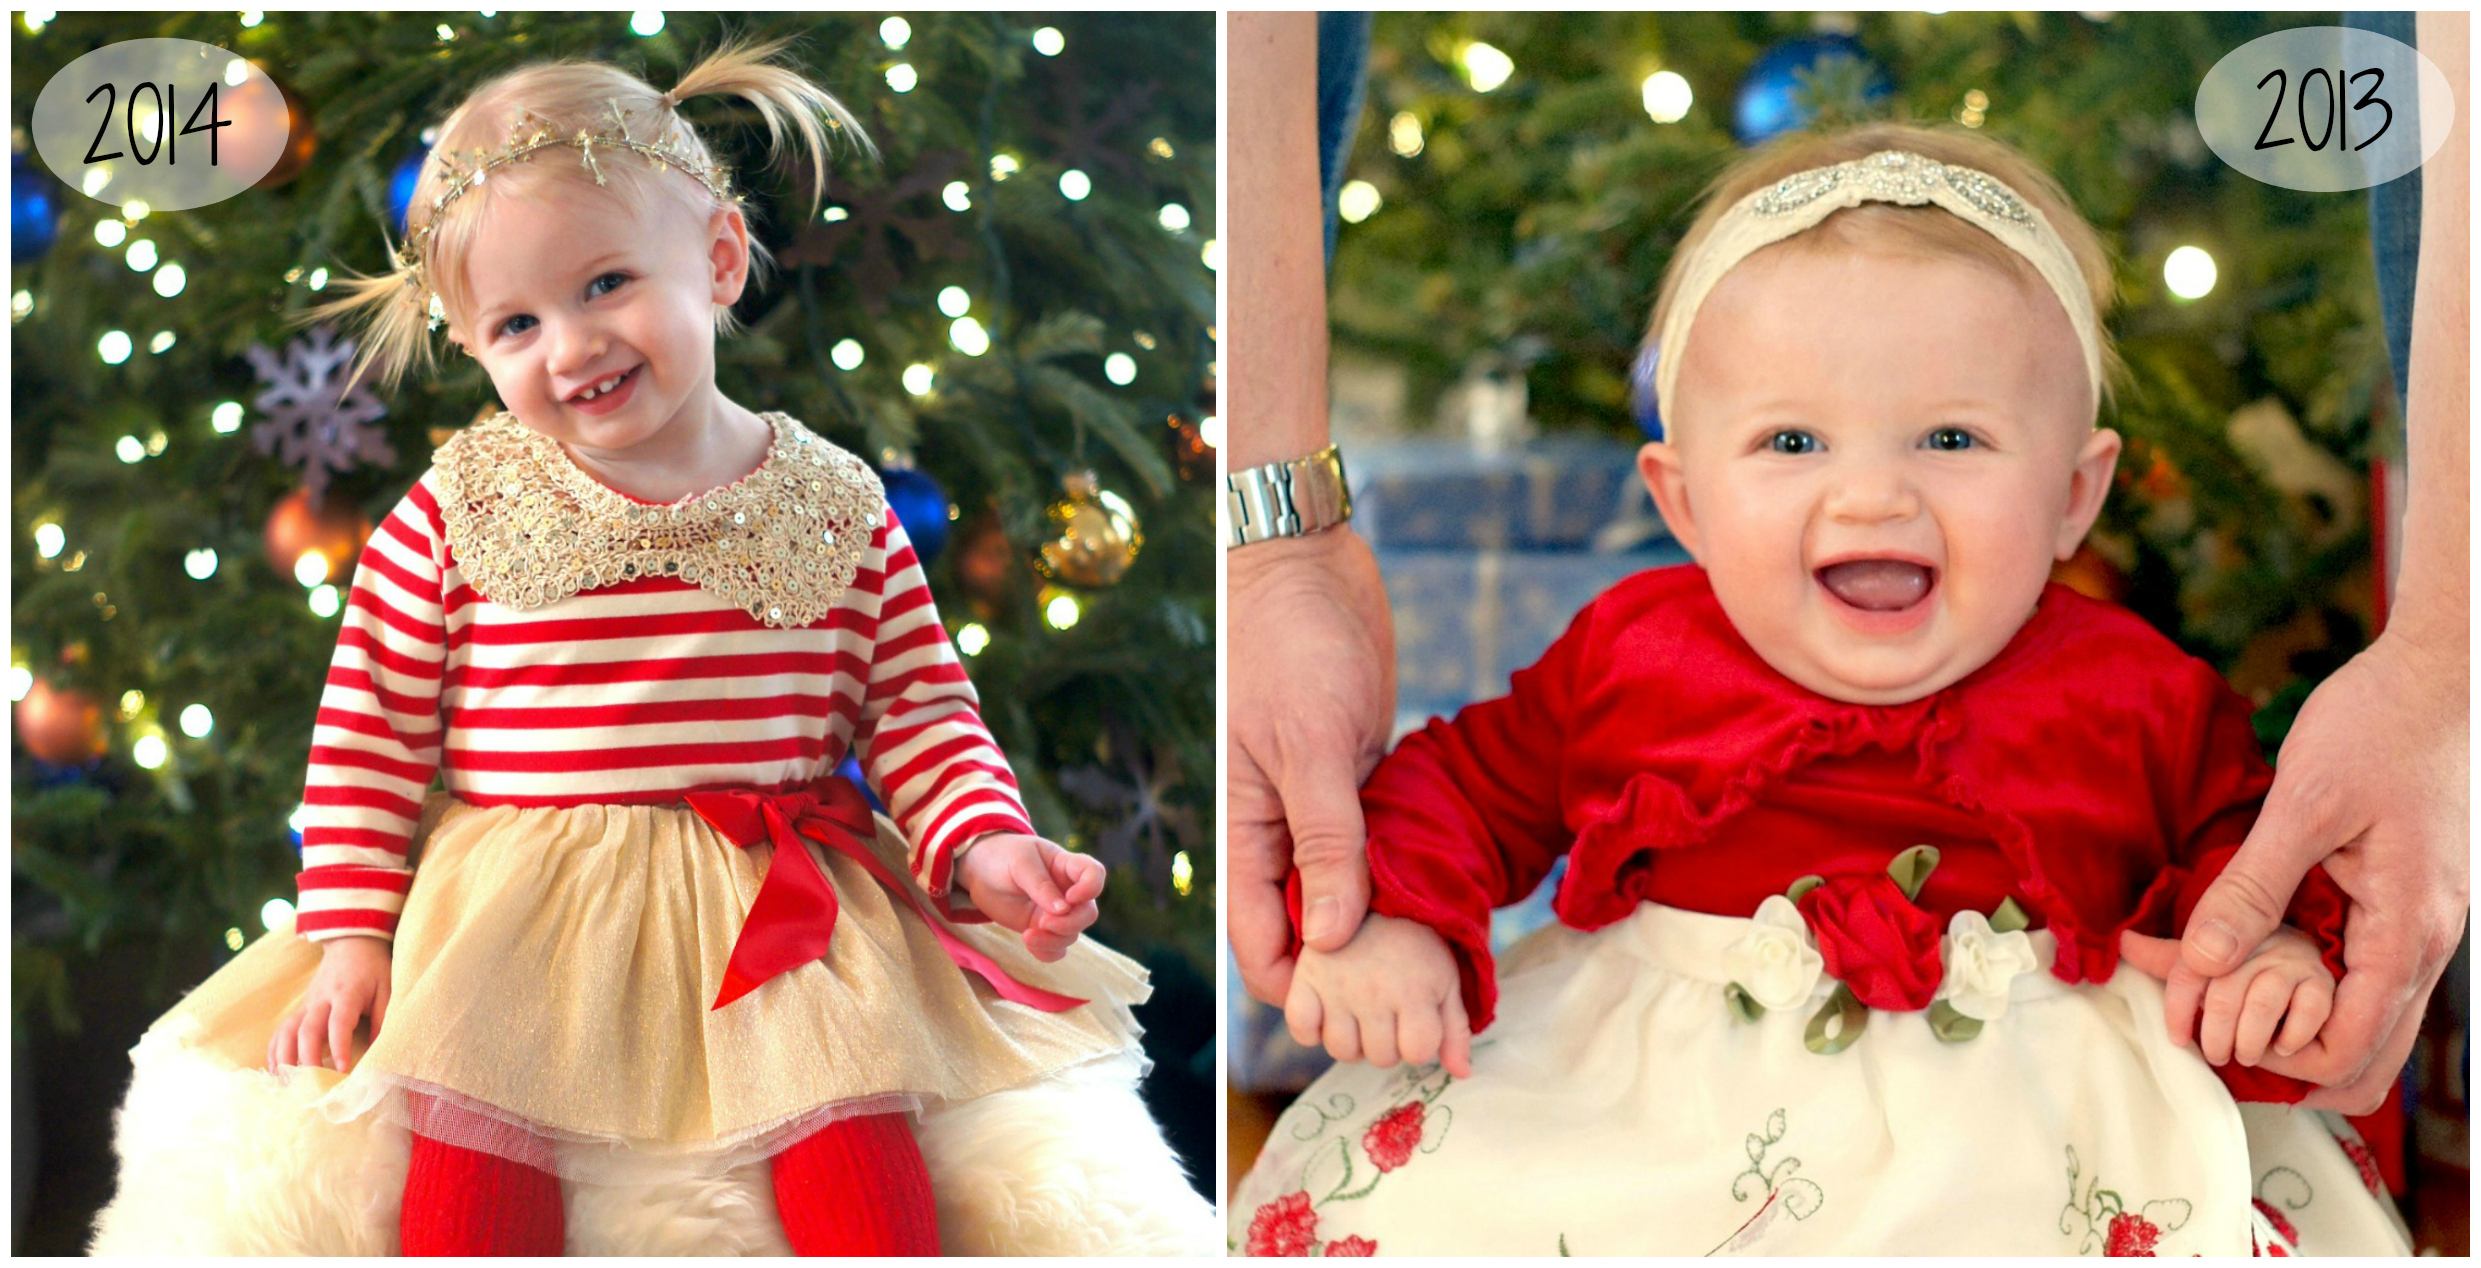 Fearless-Baby-Christmas-2014-vs-2013